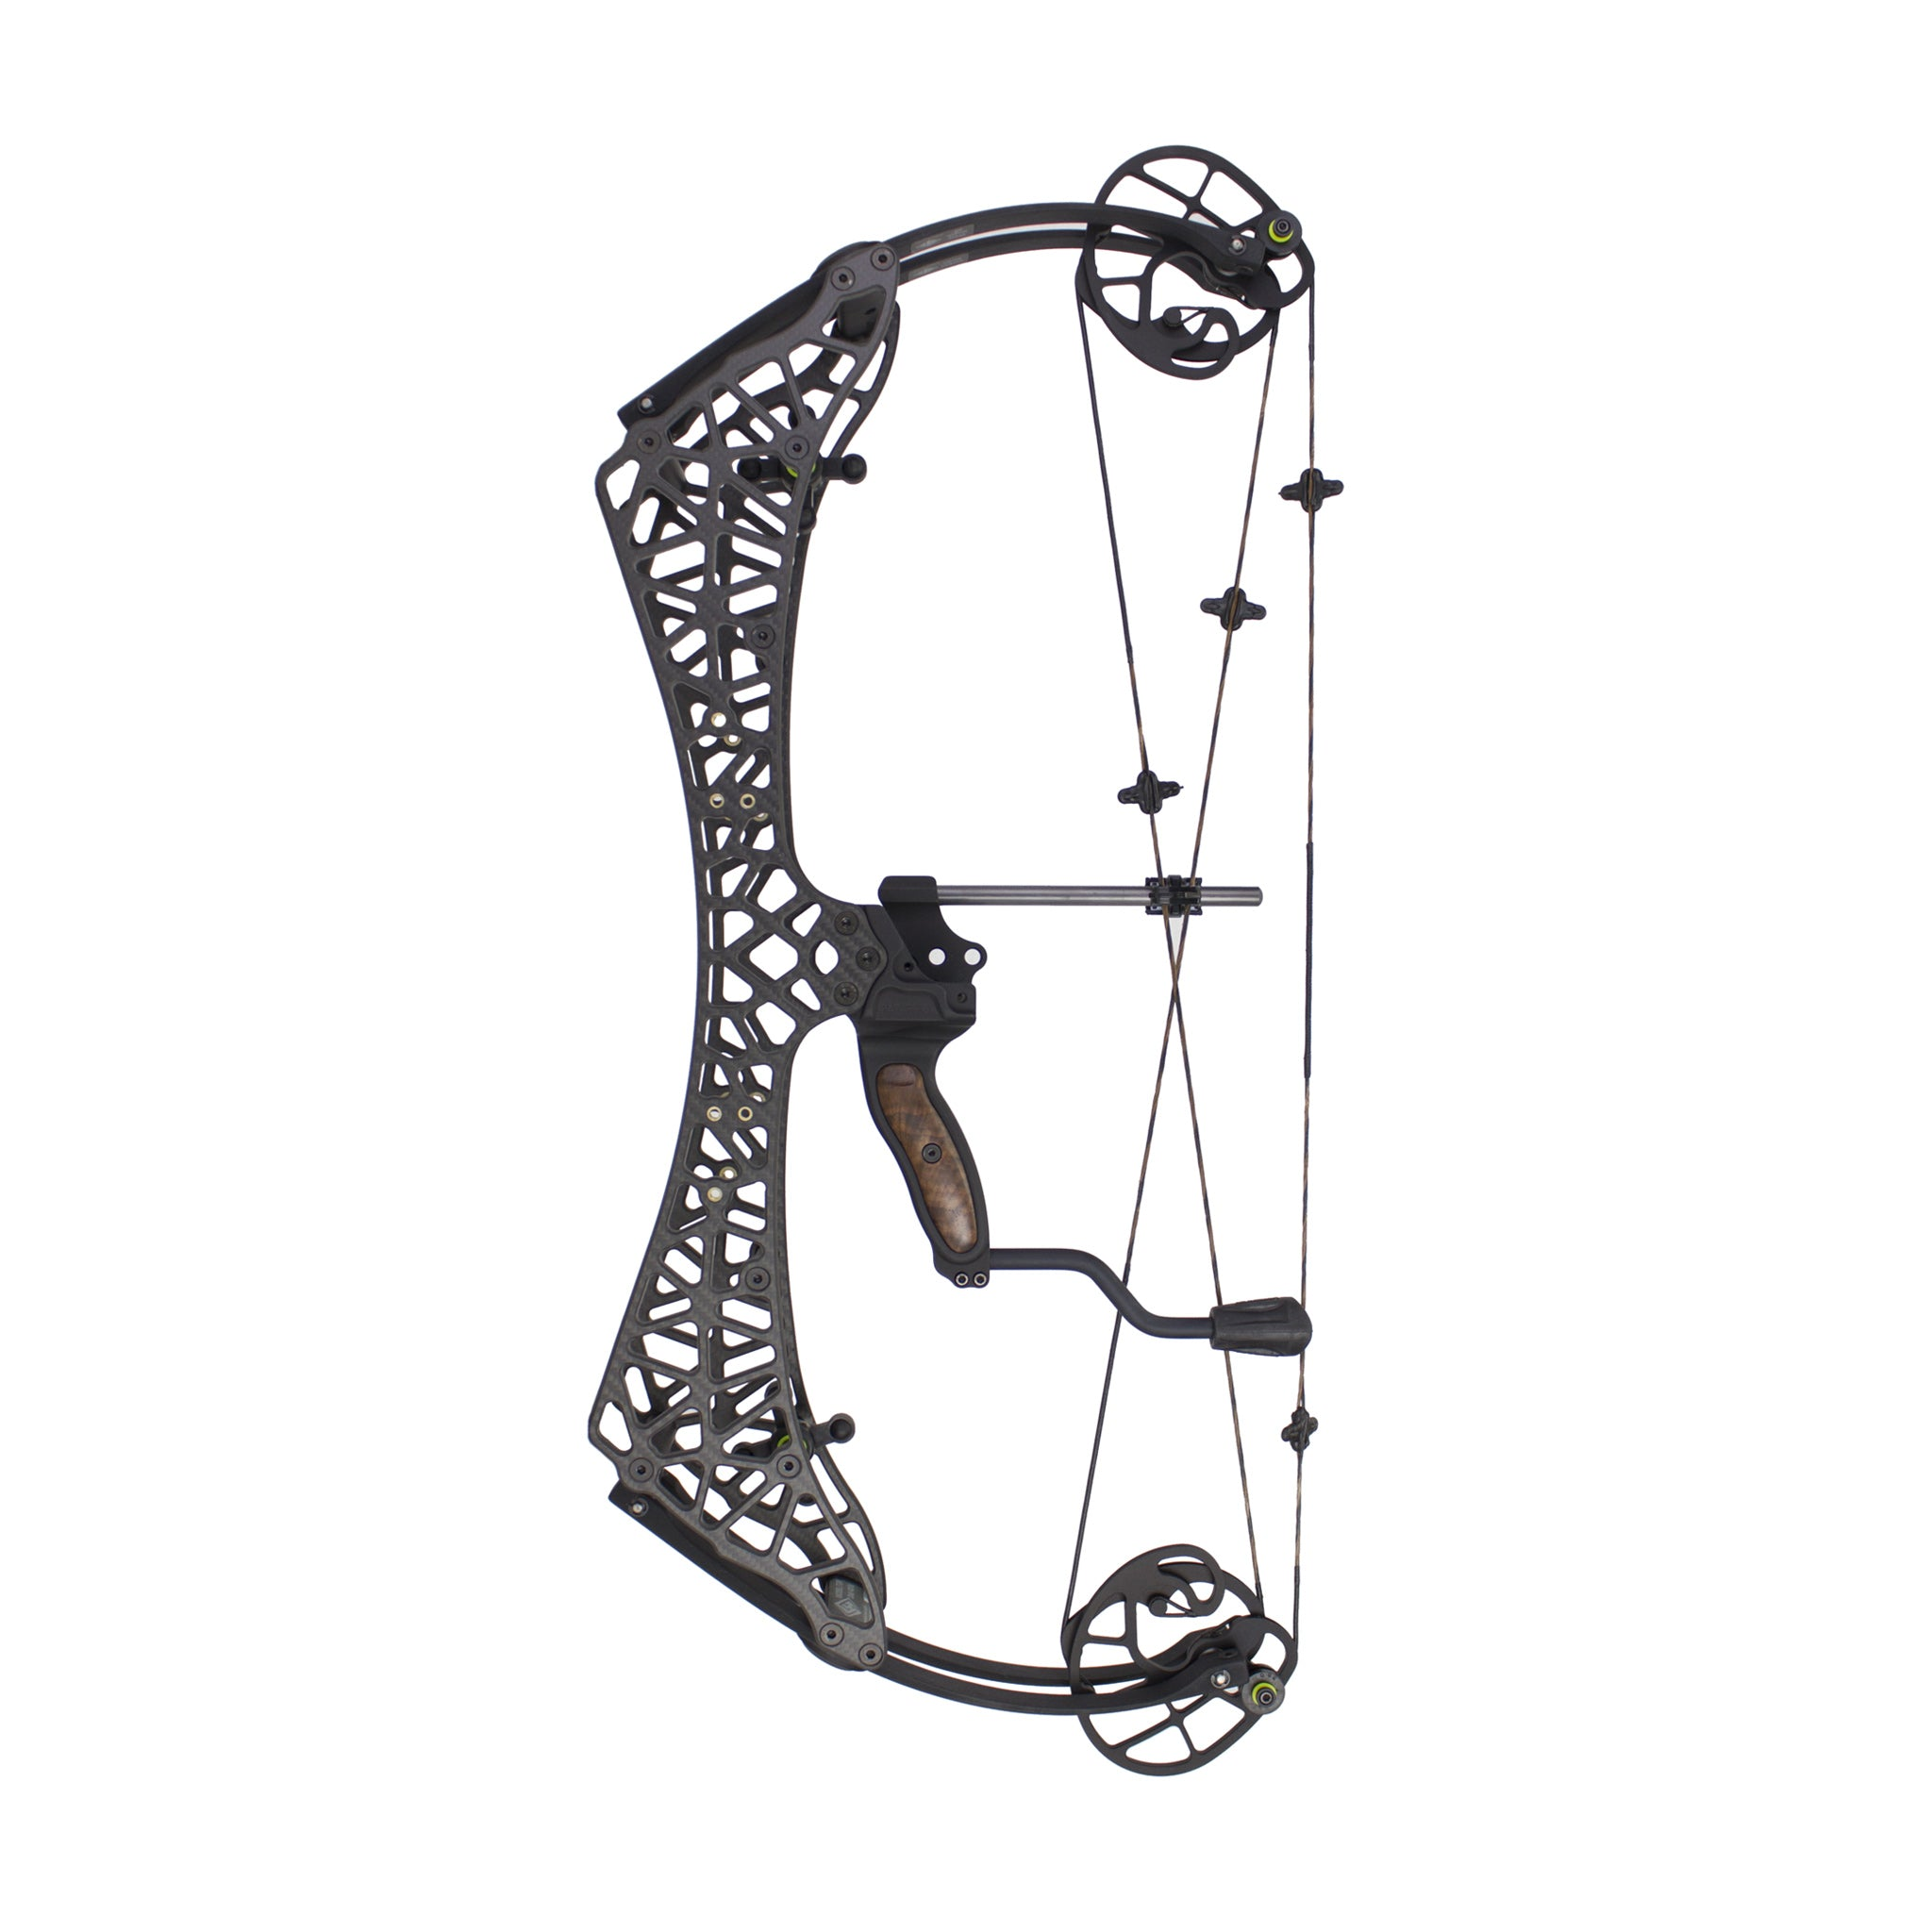 T24 Carbon Fiber Compound Bow